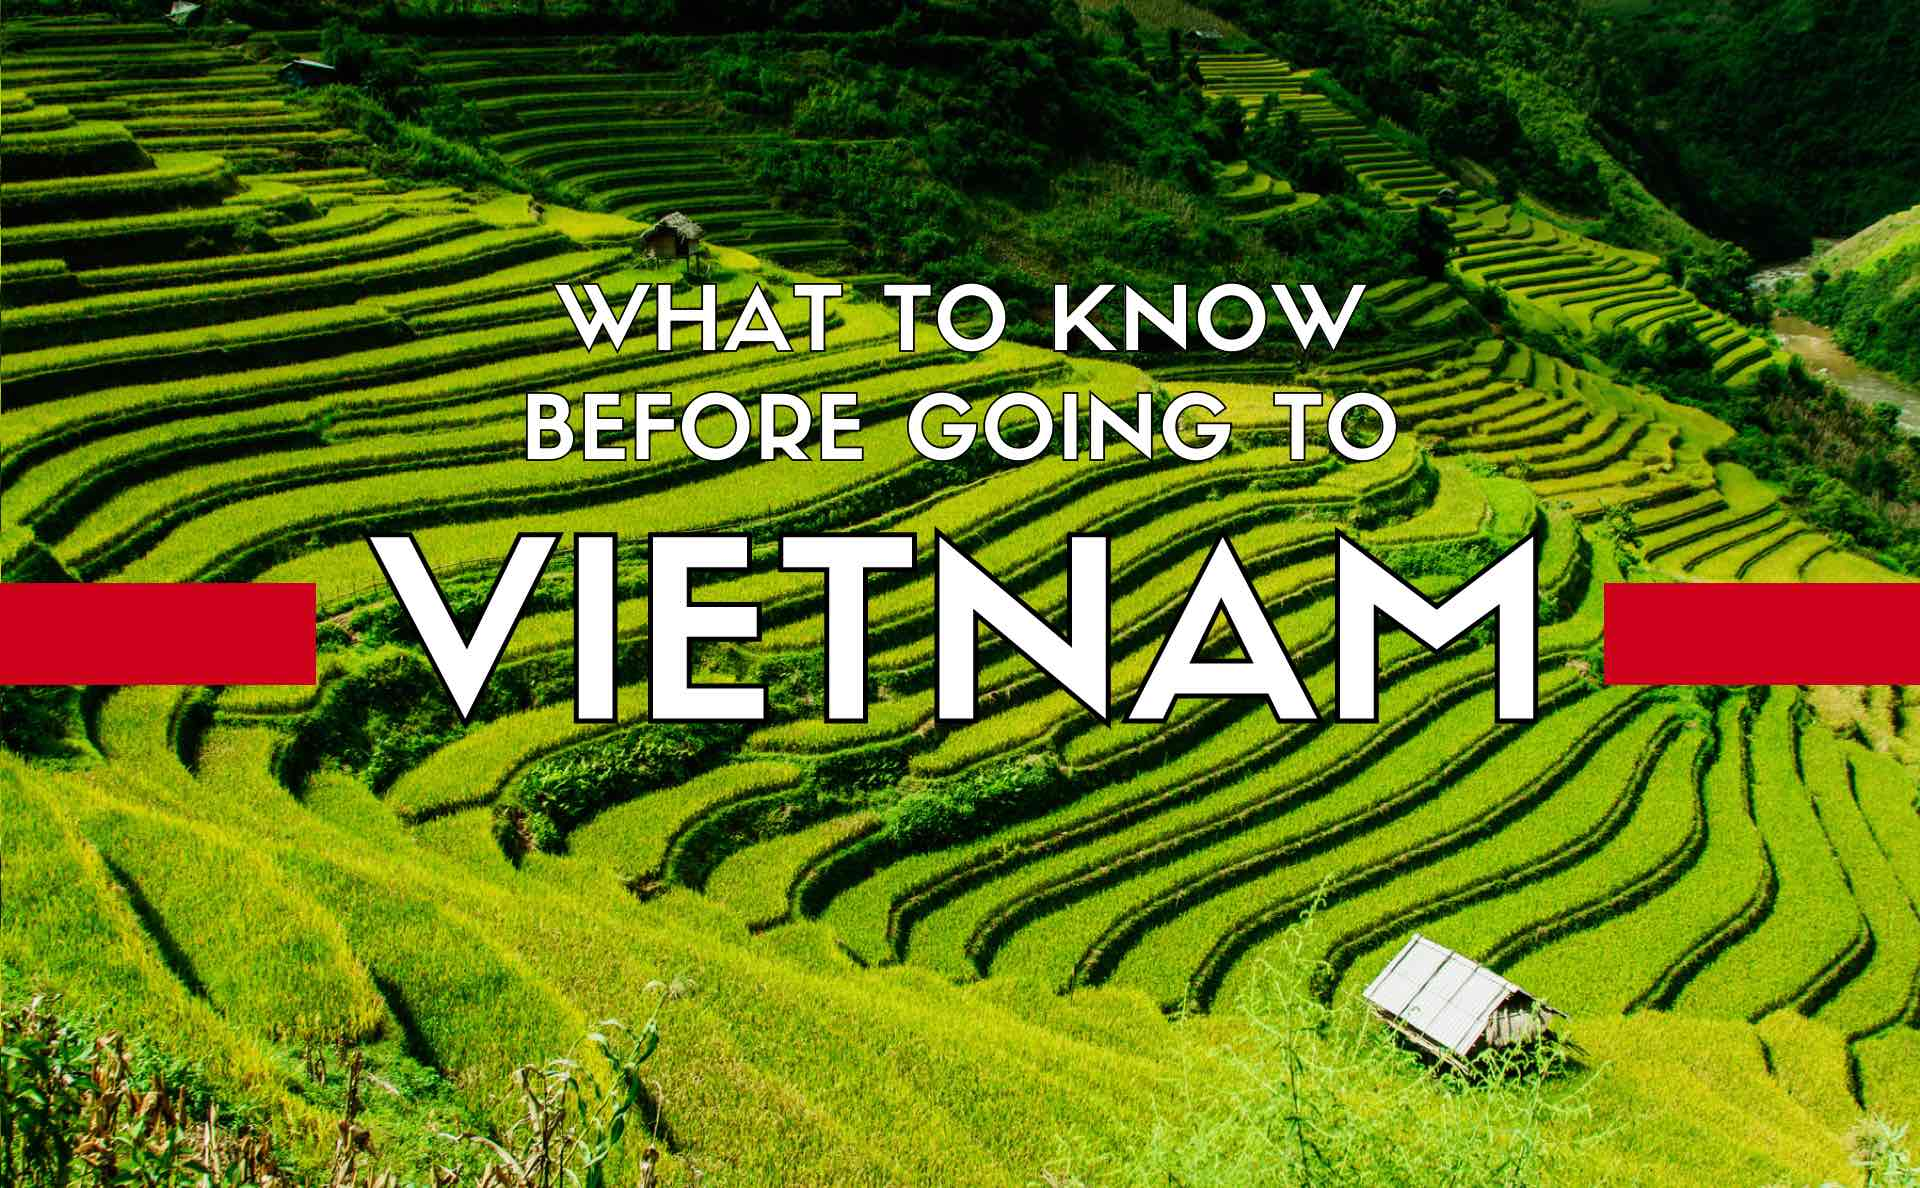 26 Important Things To Know Before Your Vietnam Trip